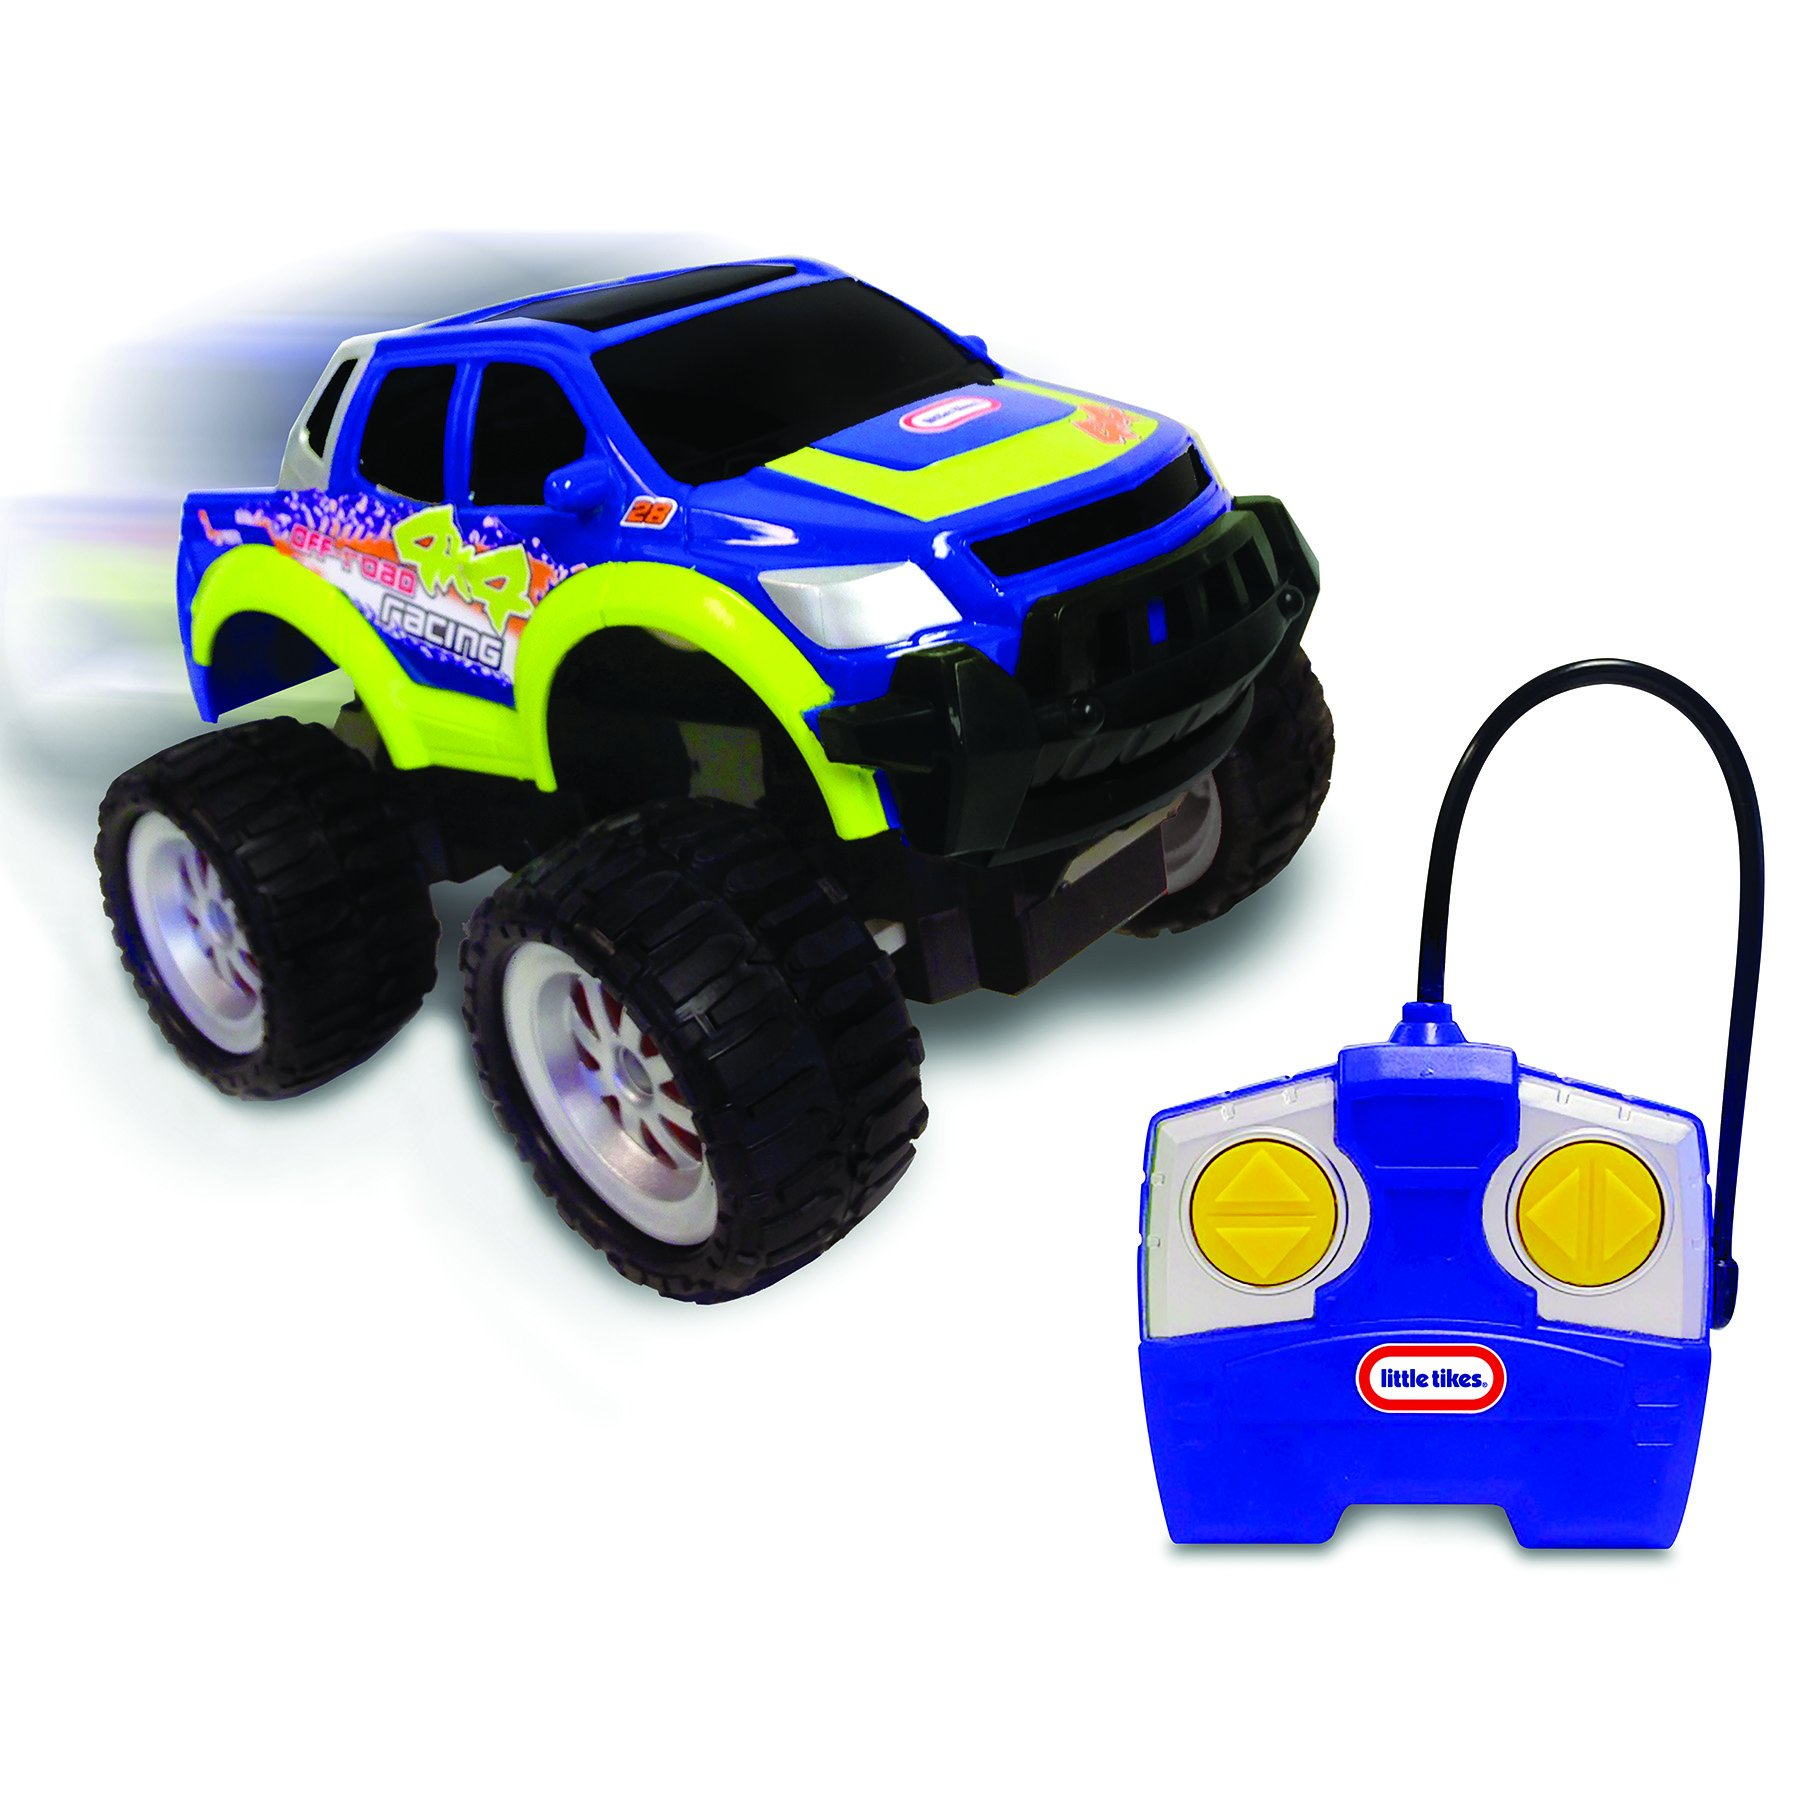 Little Tikes Better Sourcing Remote Control Truck Toy by Little Tikes (Image #2)